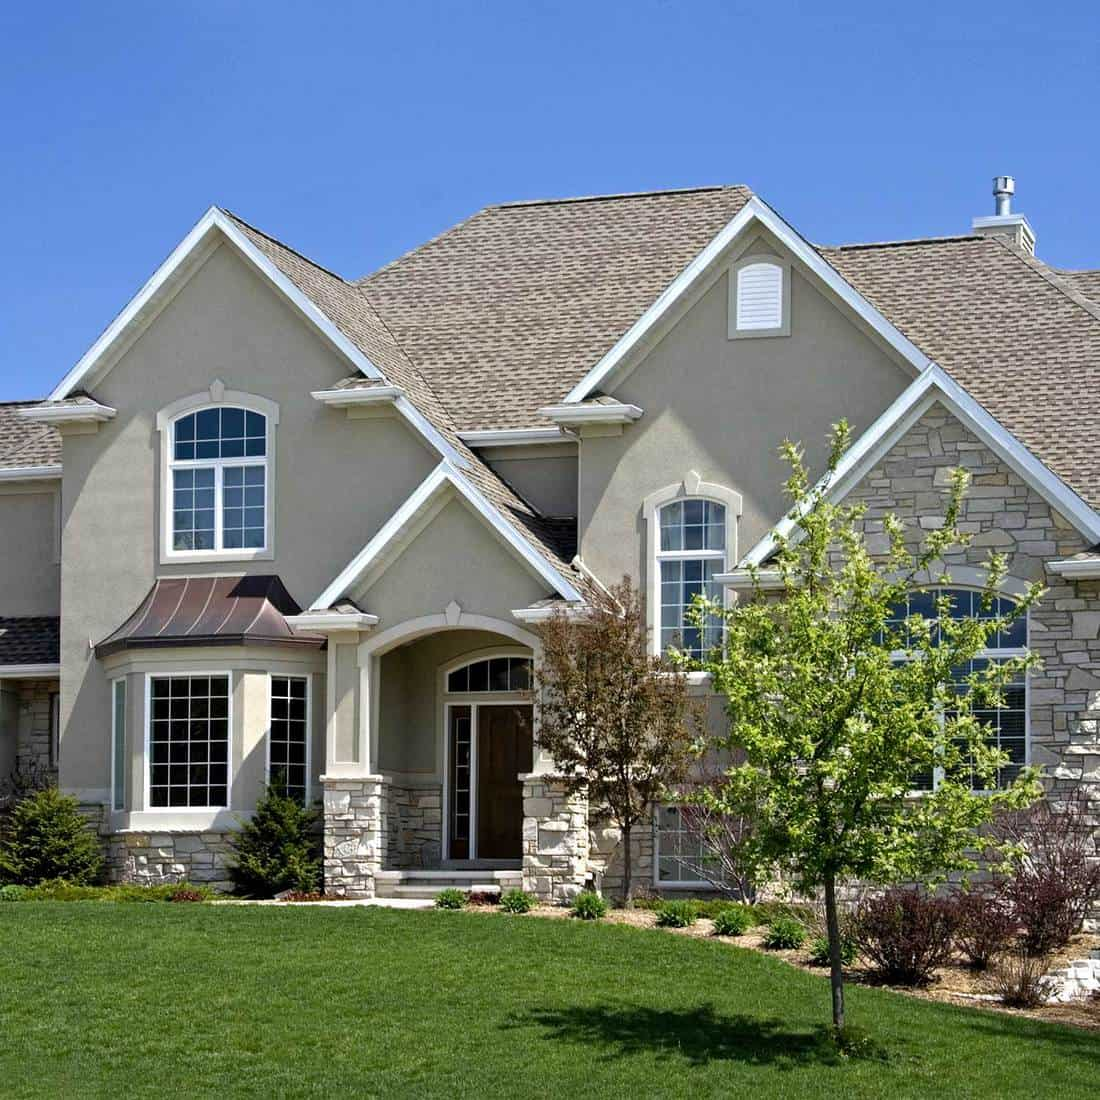 Suburban home with front yard and tile roof